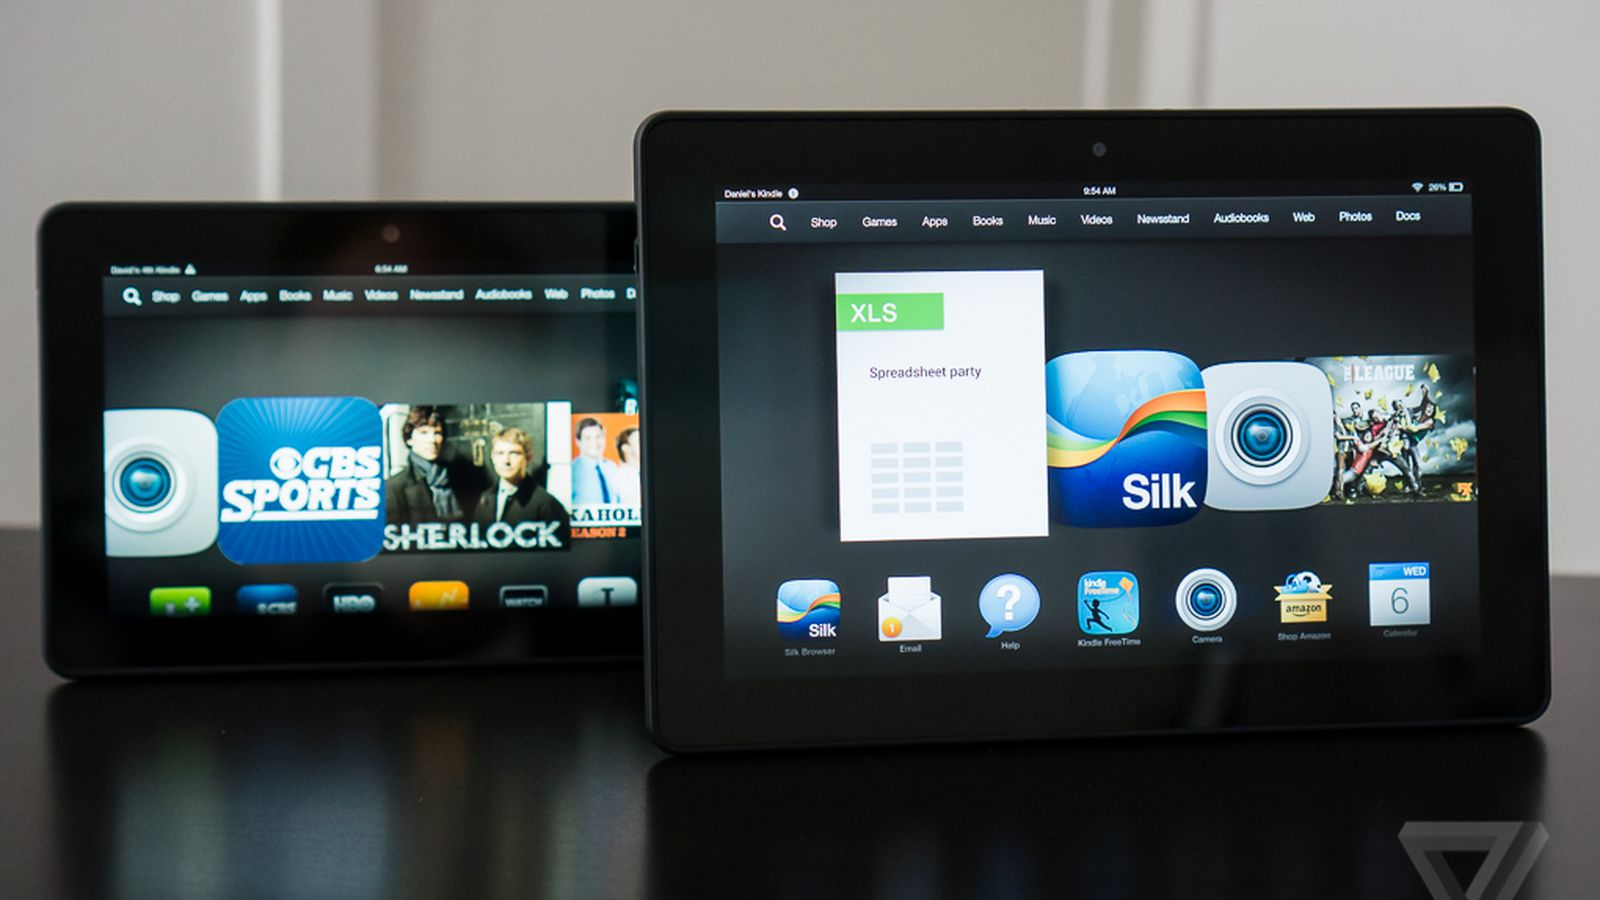 Amazon Kindle Fire HDX review (8.9-inch)